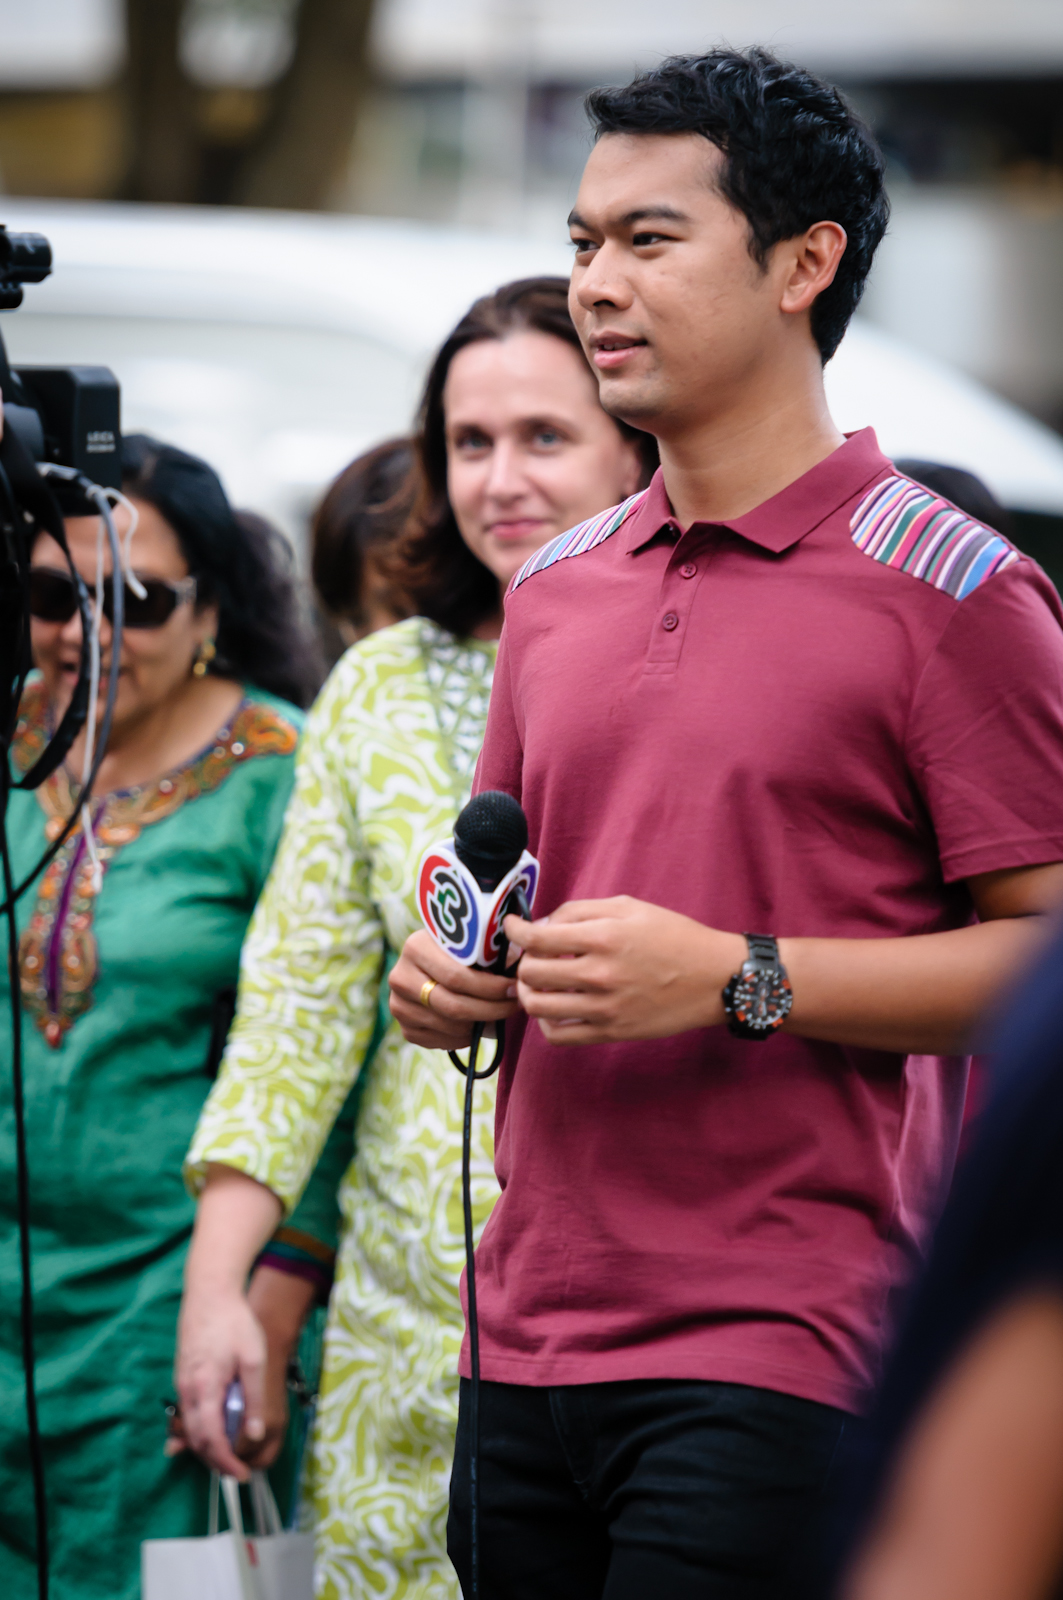 Street photography - TV presenter in Orchard Road